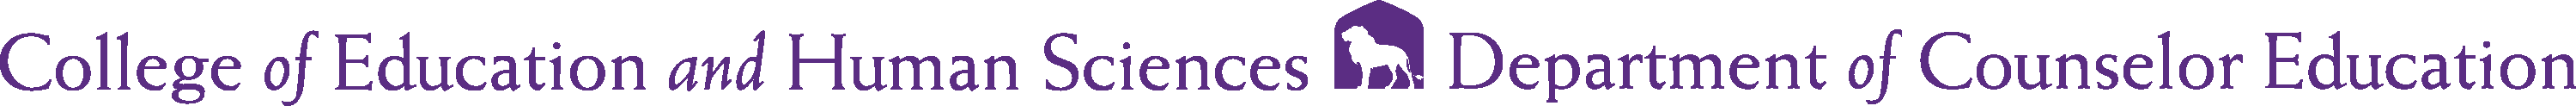 College of Education and Human Sciences - Counselor Education Logo - Purple - Version 2